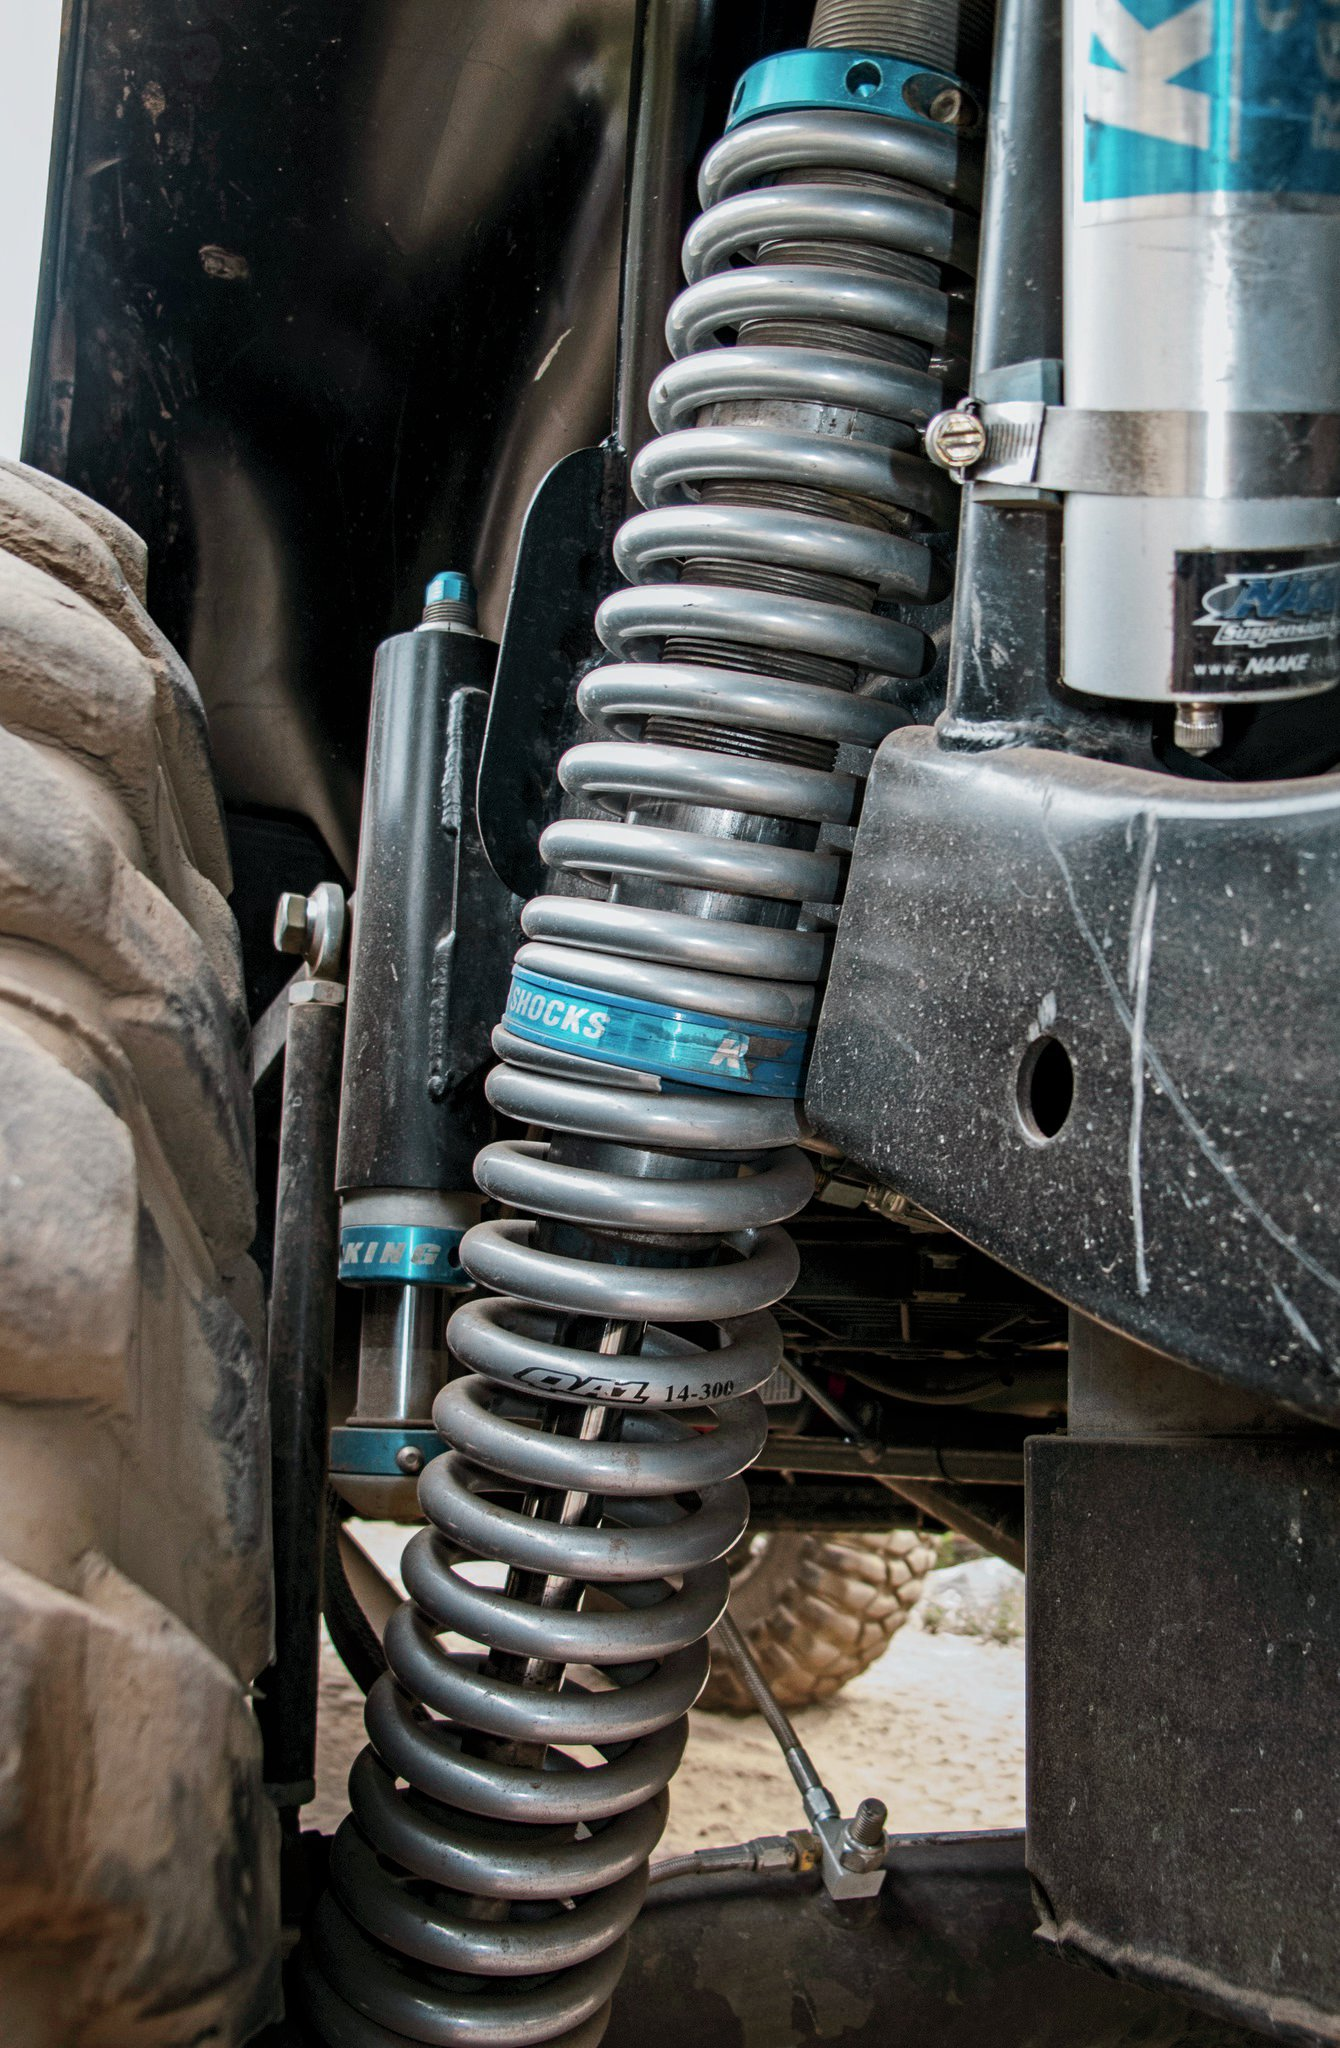 The King coilovers and air bumps are frenched into the frame for tire clearance using GenRight brackets. The 12-inch-travel King travel coilovers use springs rated at 225 over 250 lb/in and work in conjunction with a Speedway Engineering sway bar.